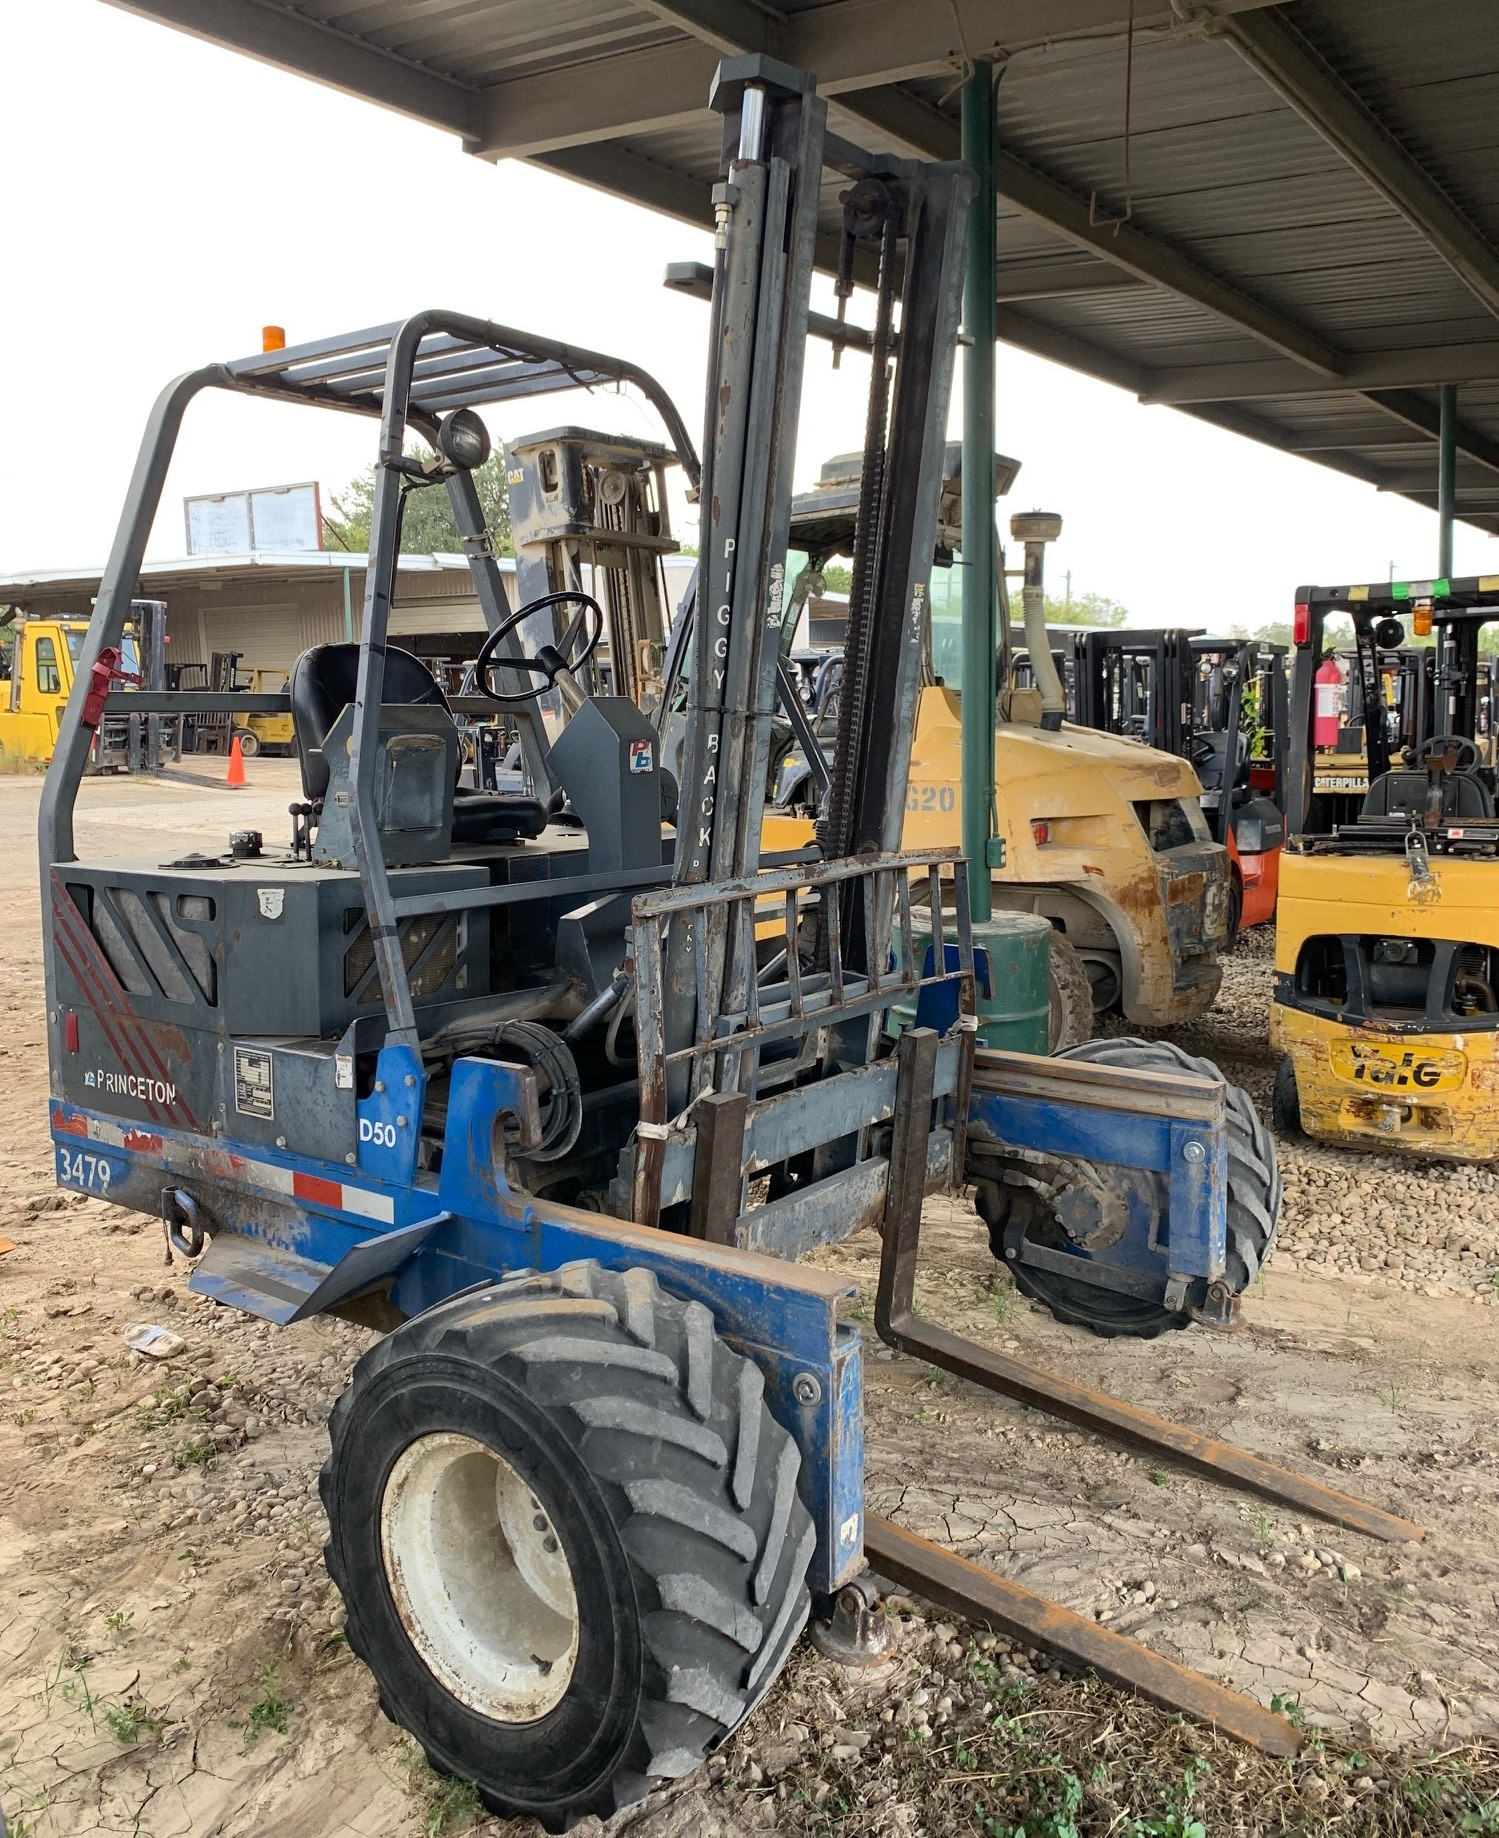 Used, 2001, Princeton, D50, Forklifts / Lift Trucks